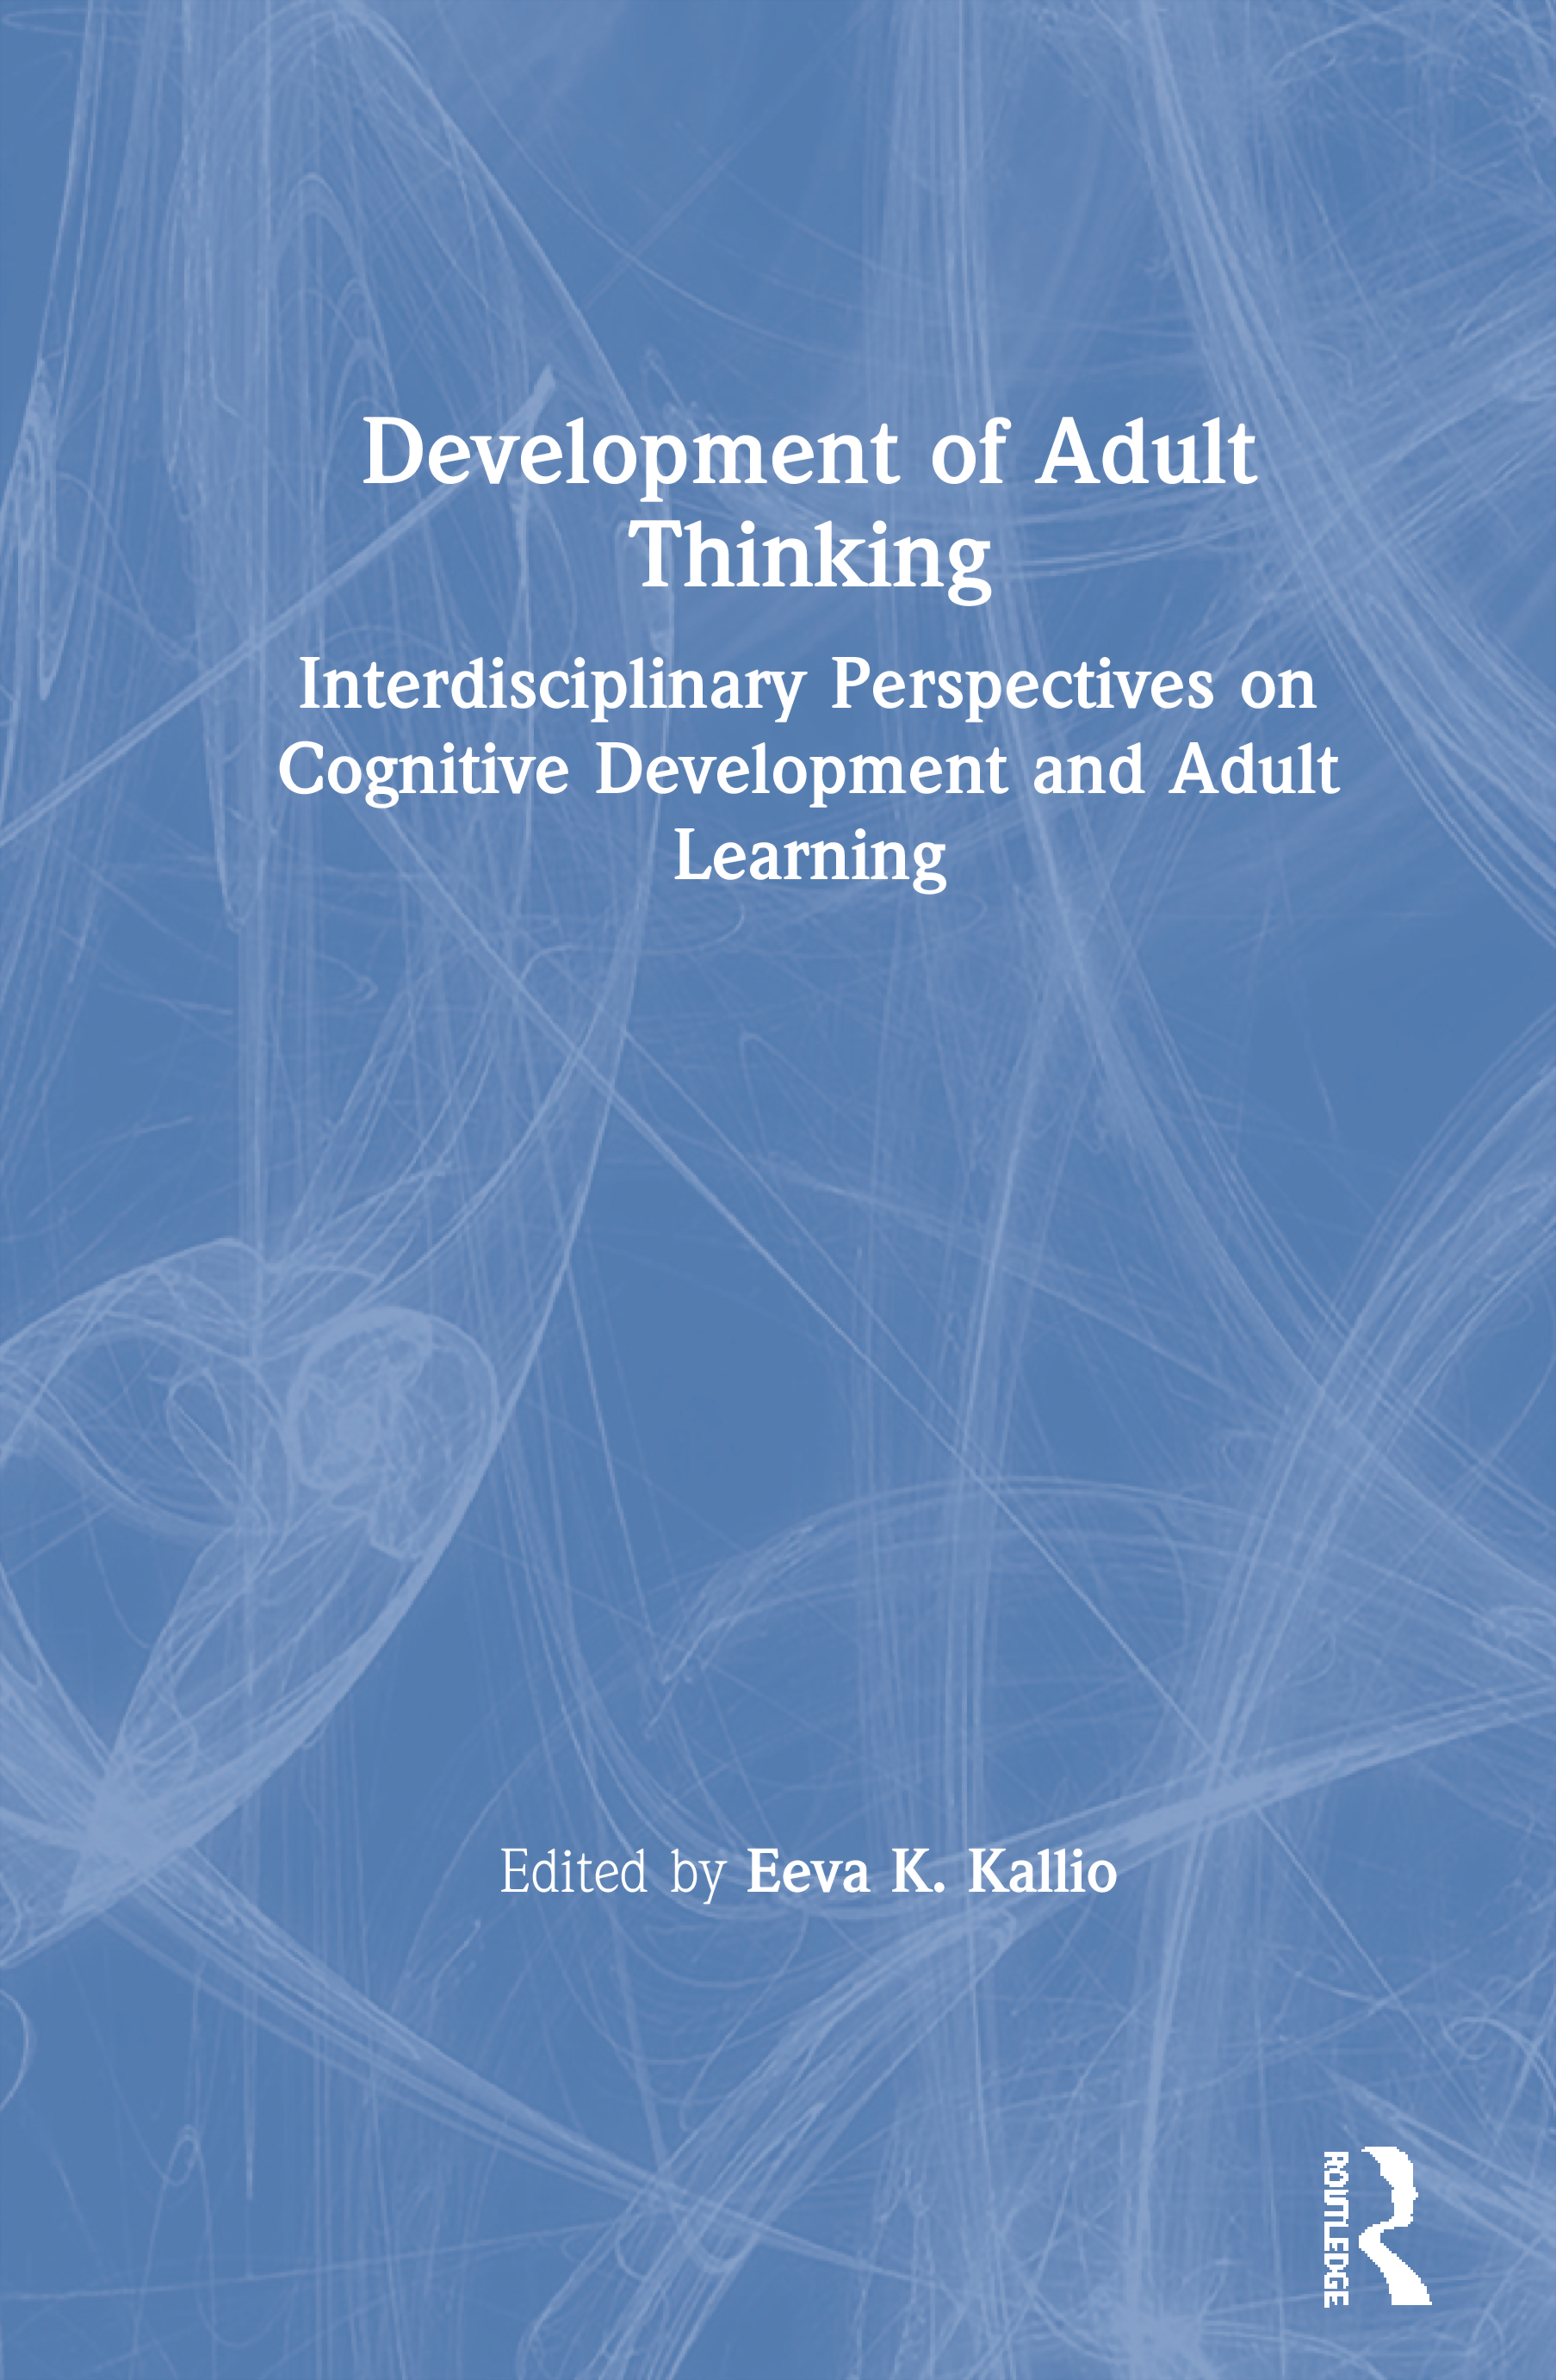 Development of Adult Thinking: Interdisciplinary Perspectives on Cognitive Development and Adult Learning book cover